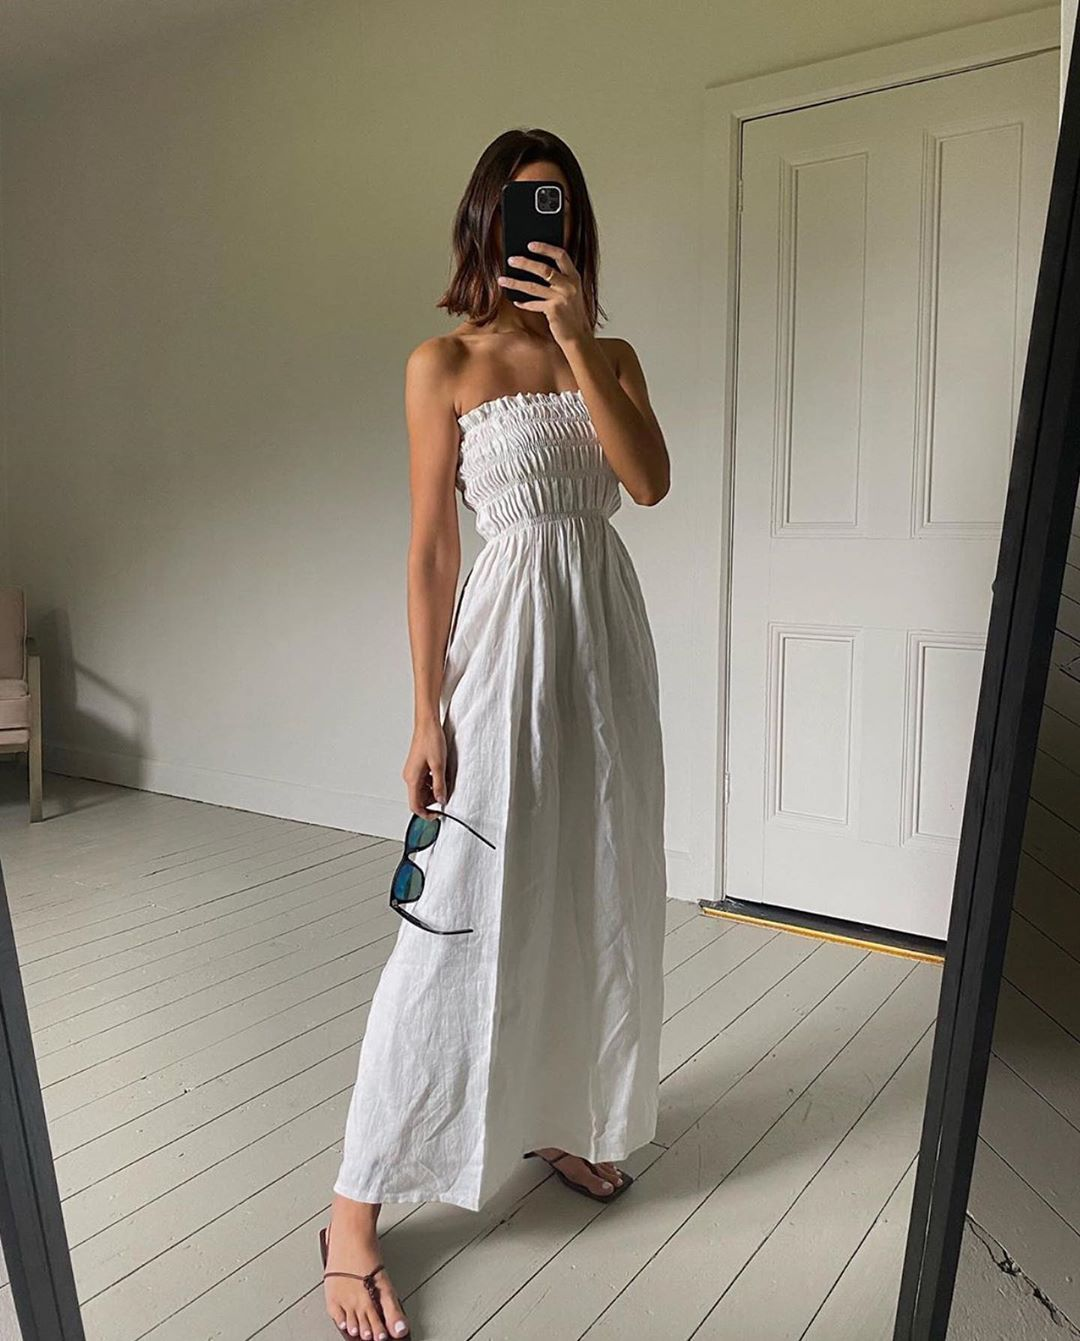 Sir The Label On Instagram The Alena Strapless Maxi Dress On Sir Muse Smythsisters Restocking Onlin Strapless Maxi Dress Maxi Dress Fashion Inspo Outfits [ 1341 x 1080 Pixel ]